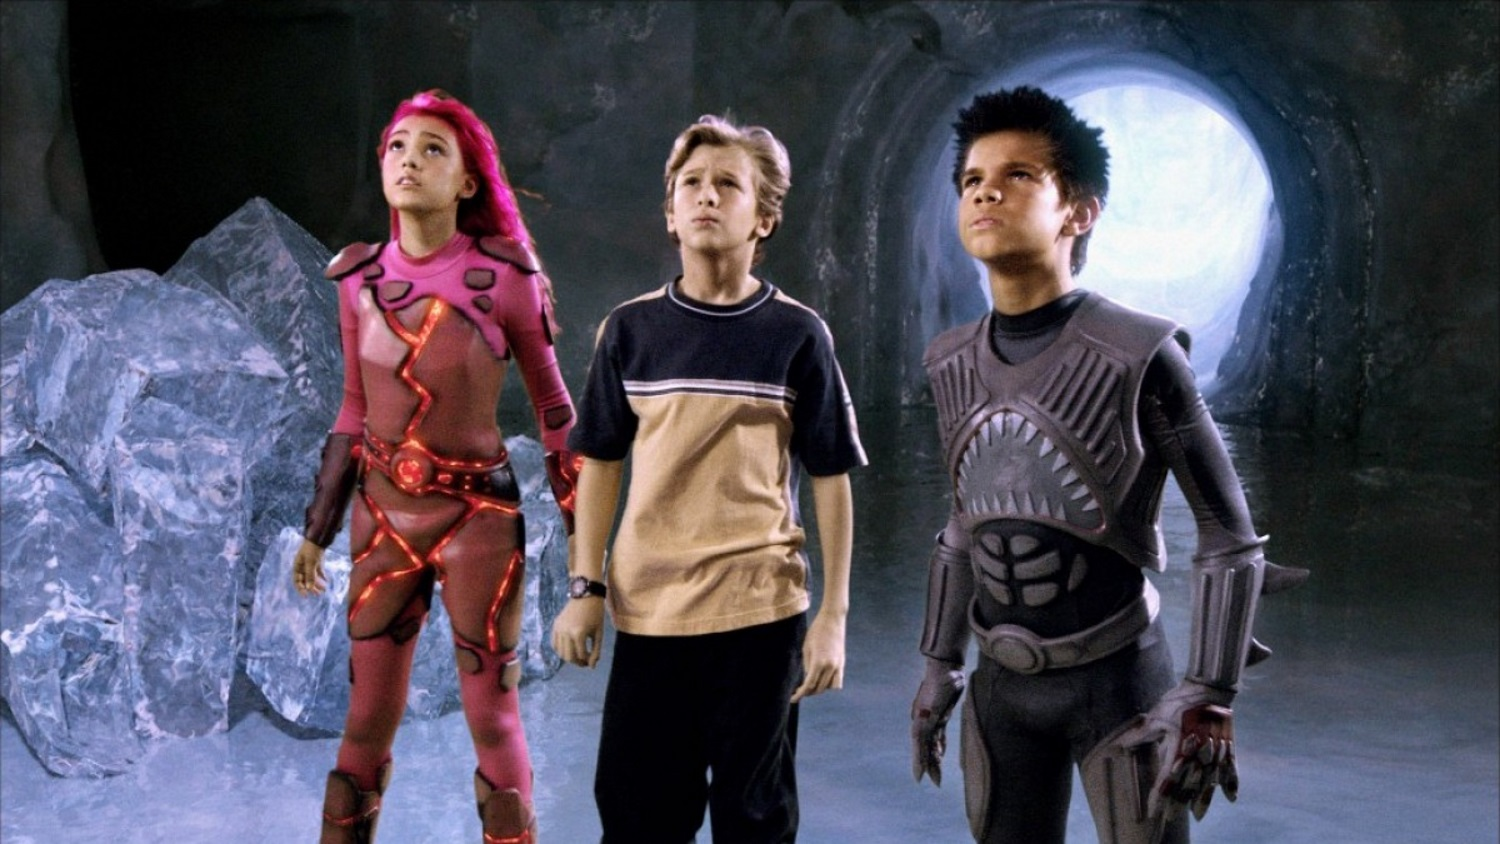 (l to r) Lavagirl (Taylor Dooley), Max (Cayden Boyd) and Sharkboy (Taylor Lautner) in The Adventures of Sharkboy and Lavagirl in 3-D (2005)